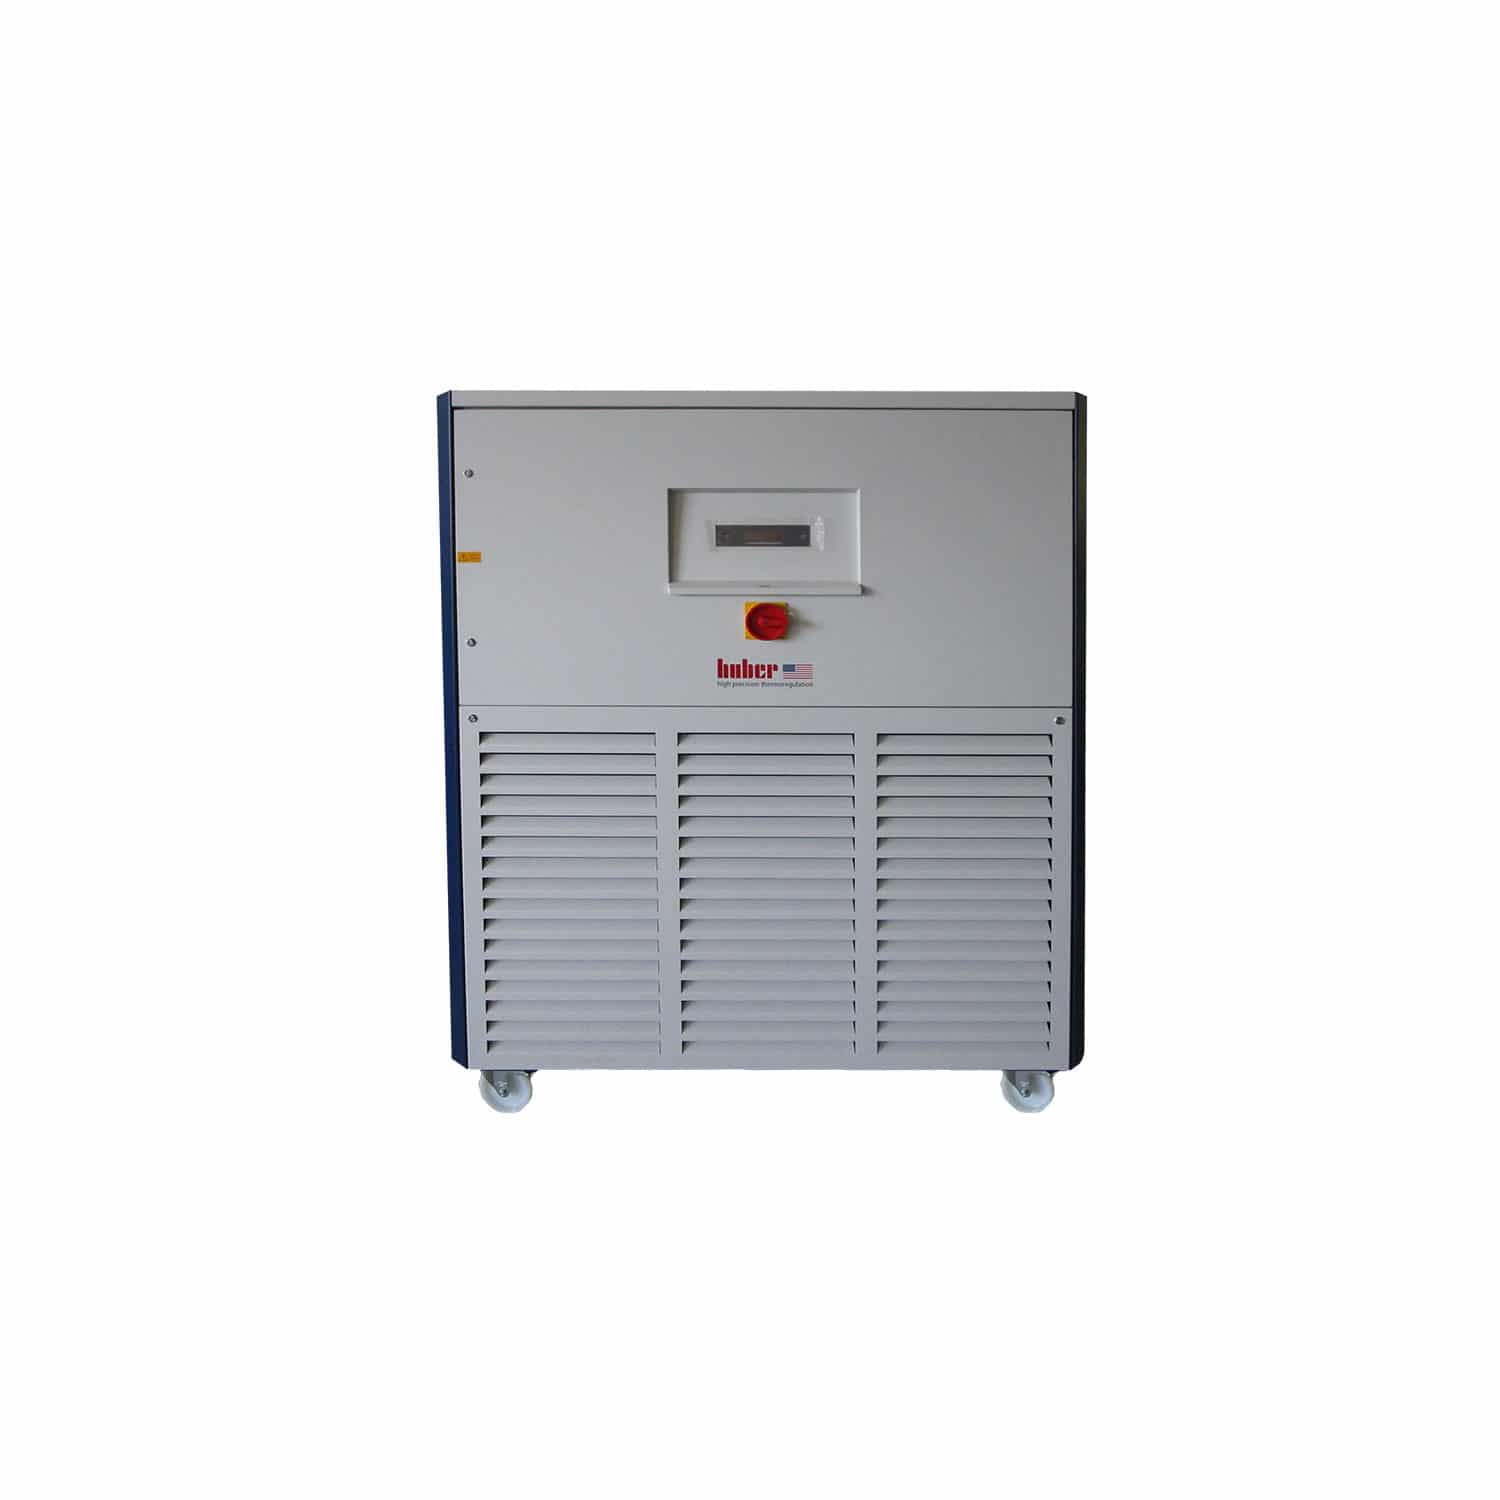 Buy a Huber CoolSmart Chiller (CS-200) Online - Price Matched